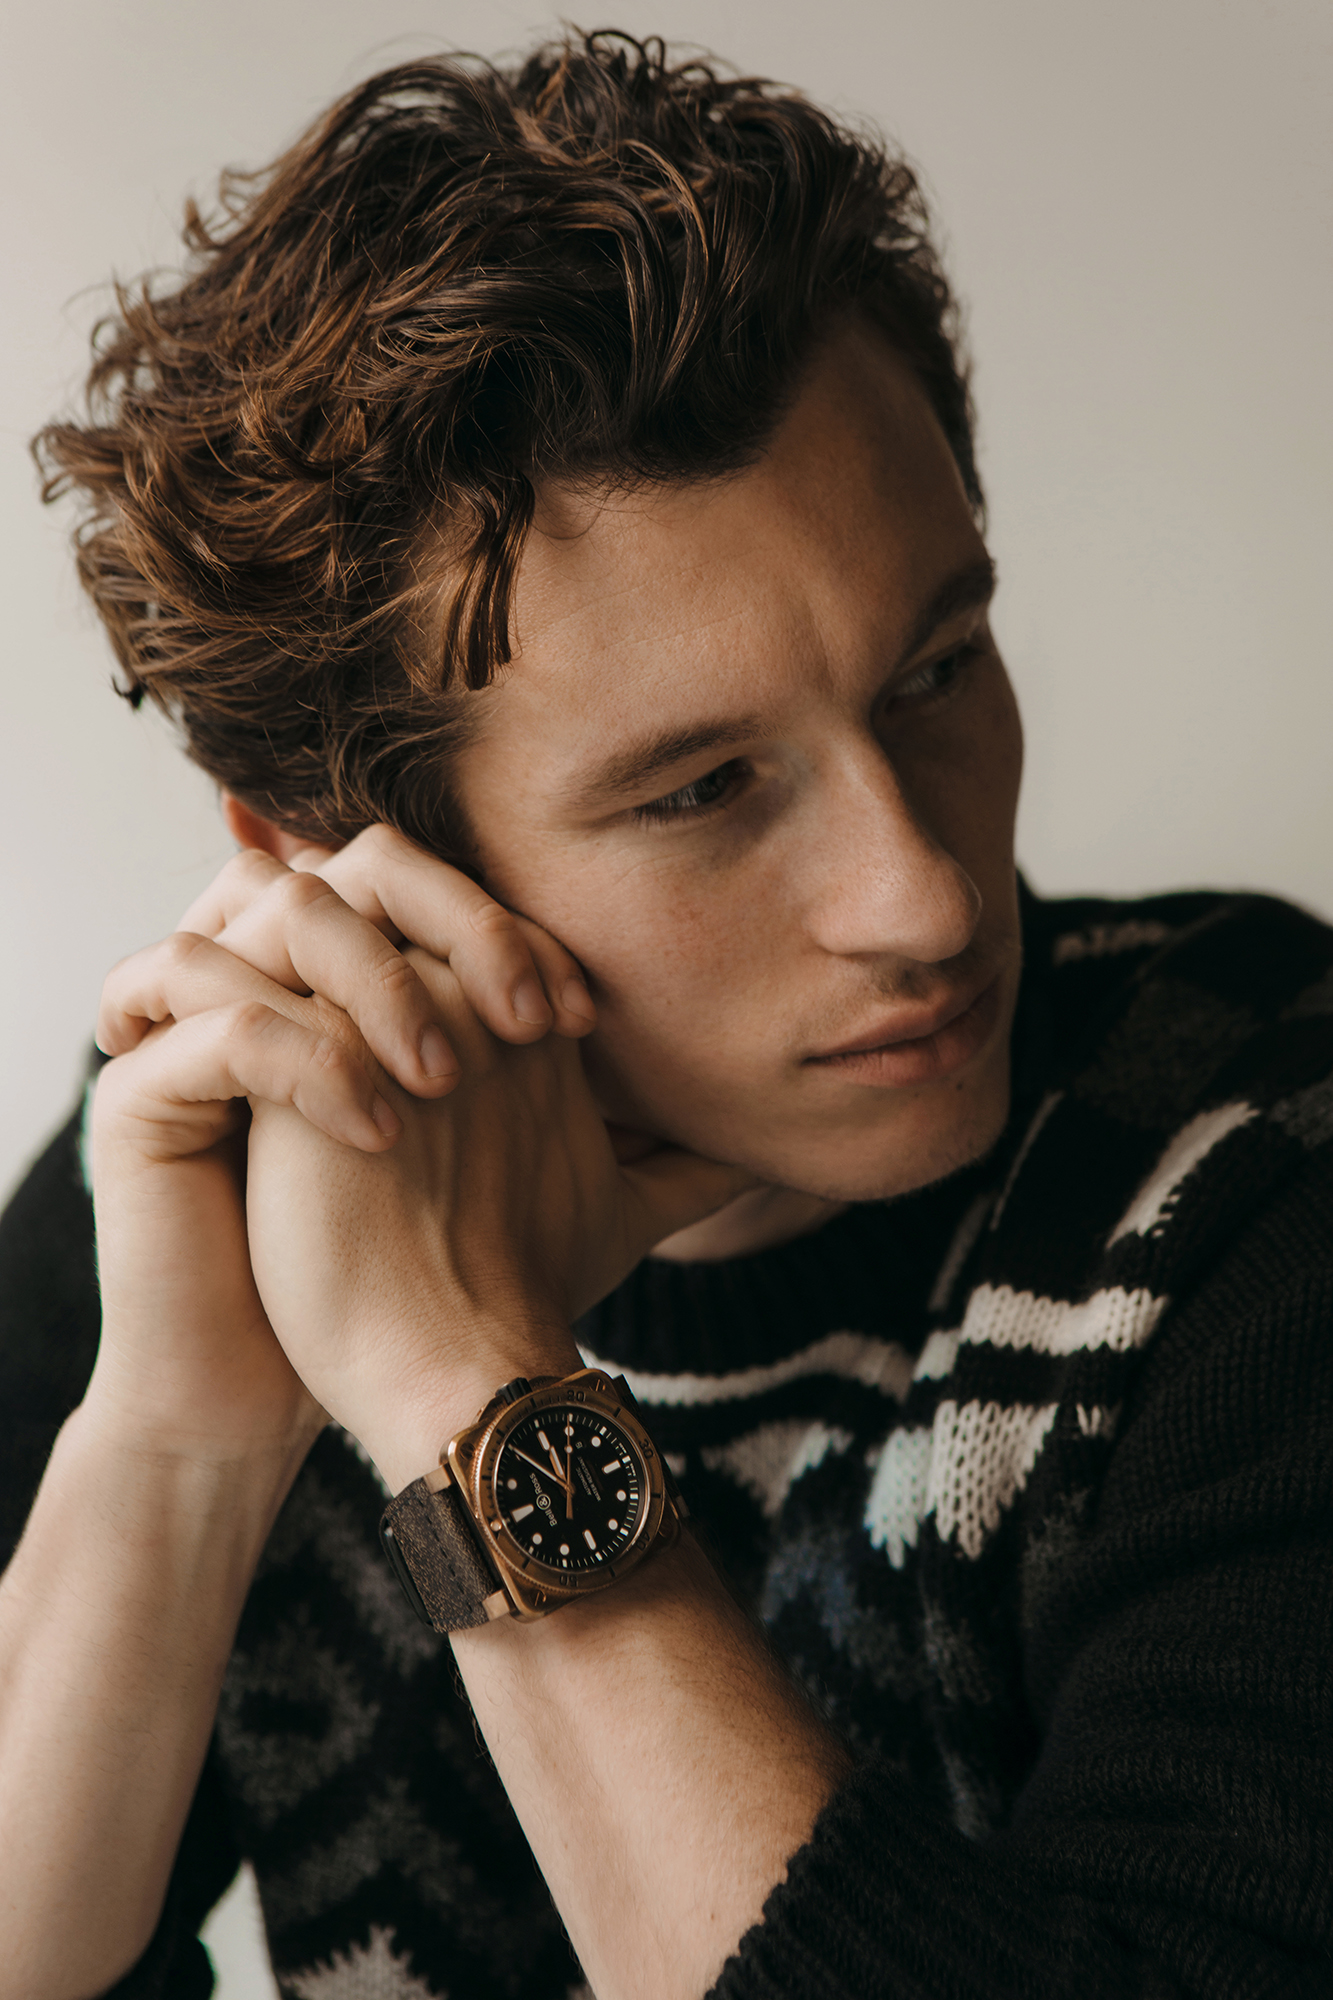 Sweater by   PRADA  ; Timepiece by   BELL & ROSS   |  BR03-92 Diver Bronze